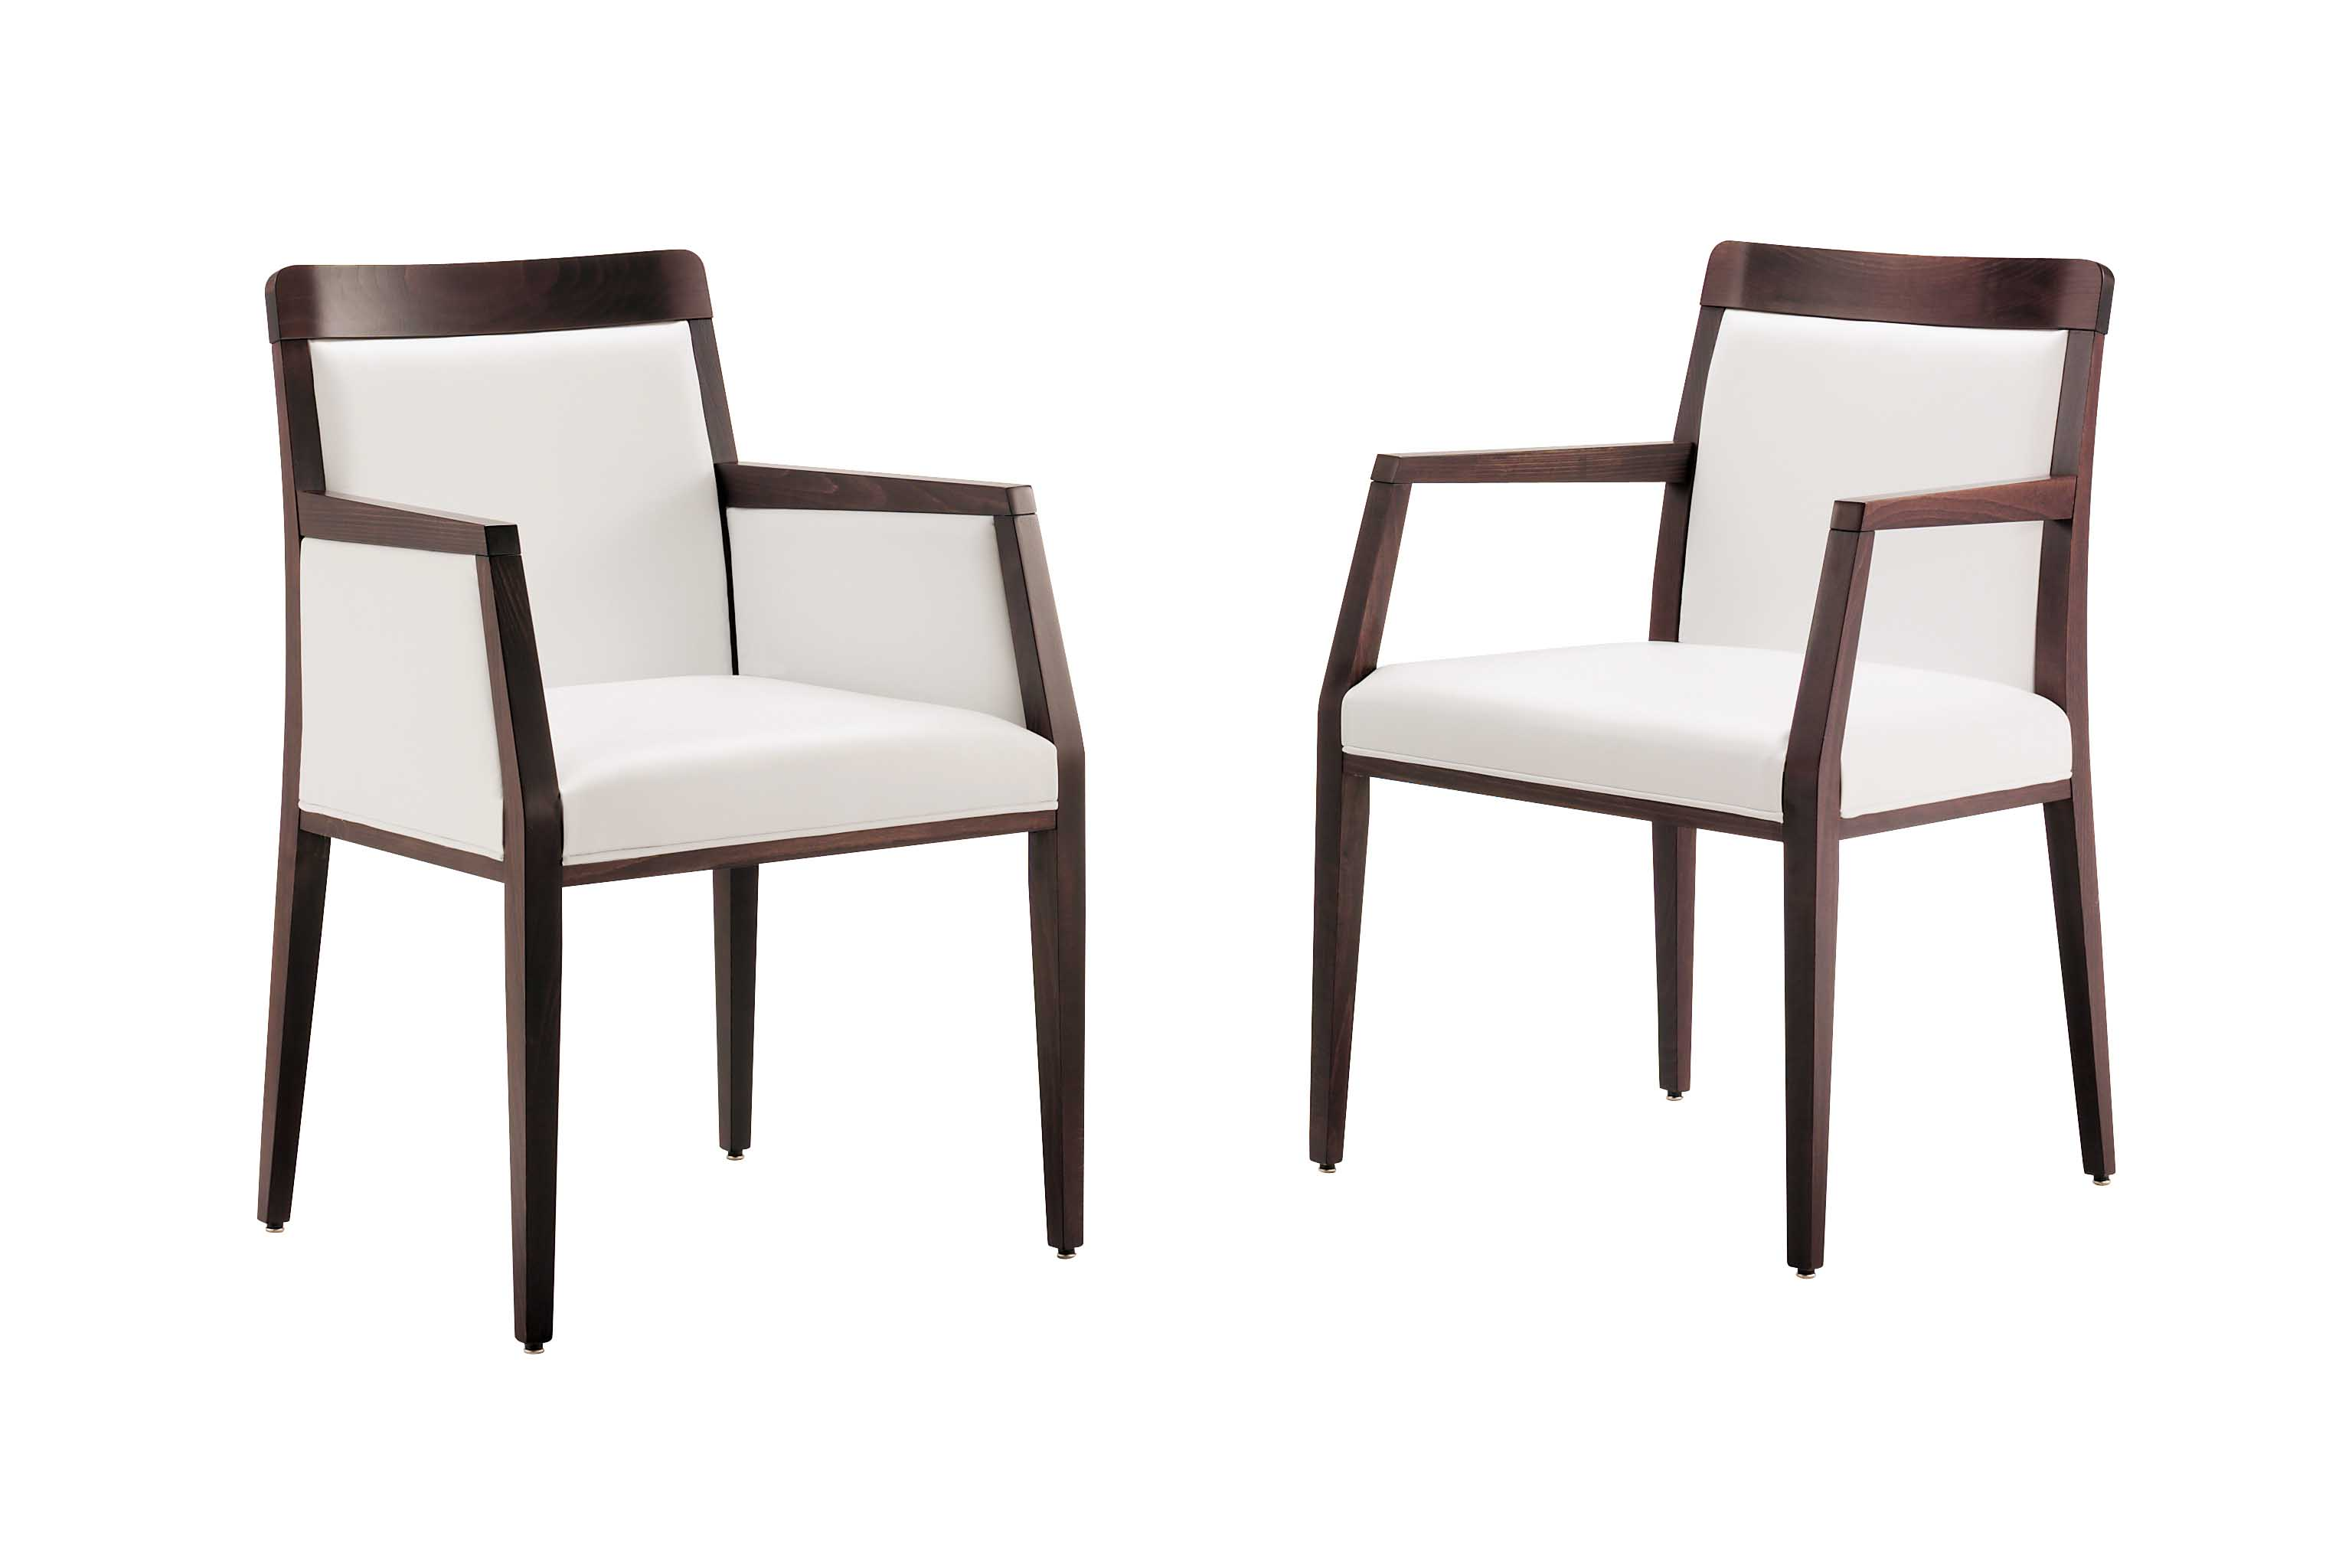 Restaurant Furniture Supply Hotel Wholesale Furniture Supplier - Table and chair design for restaurant